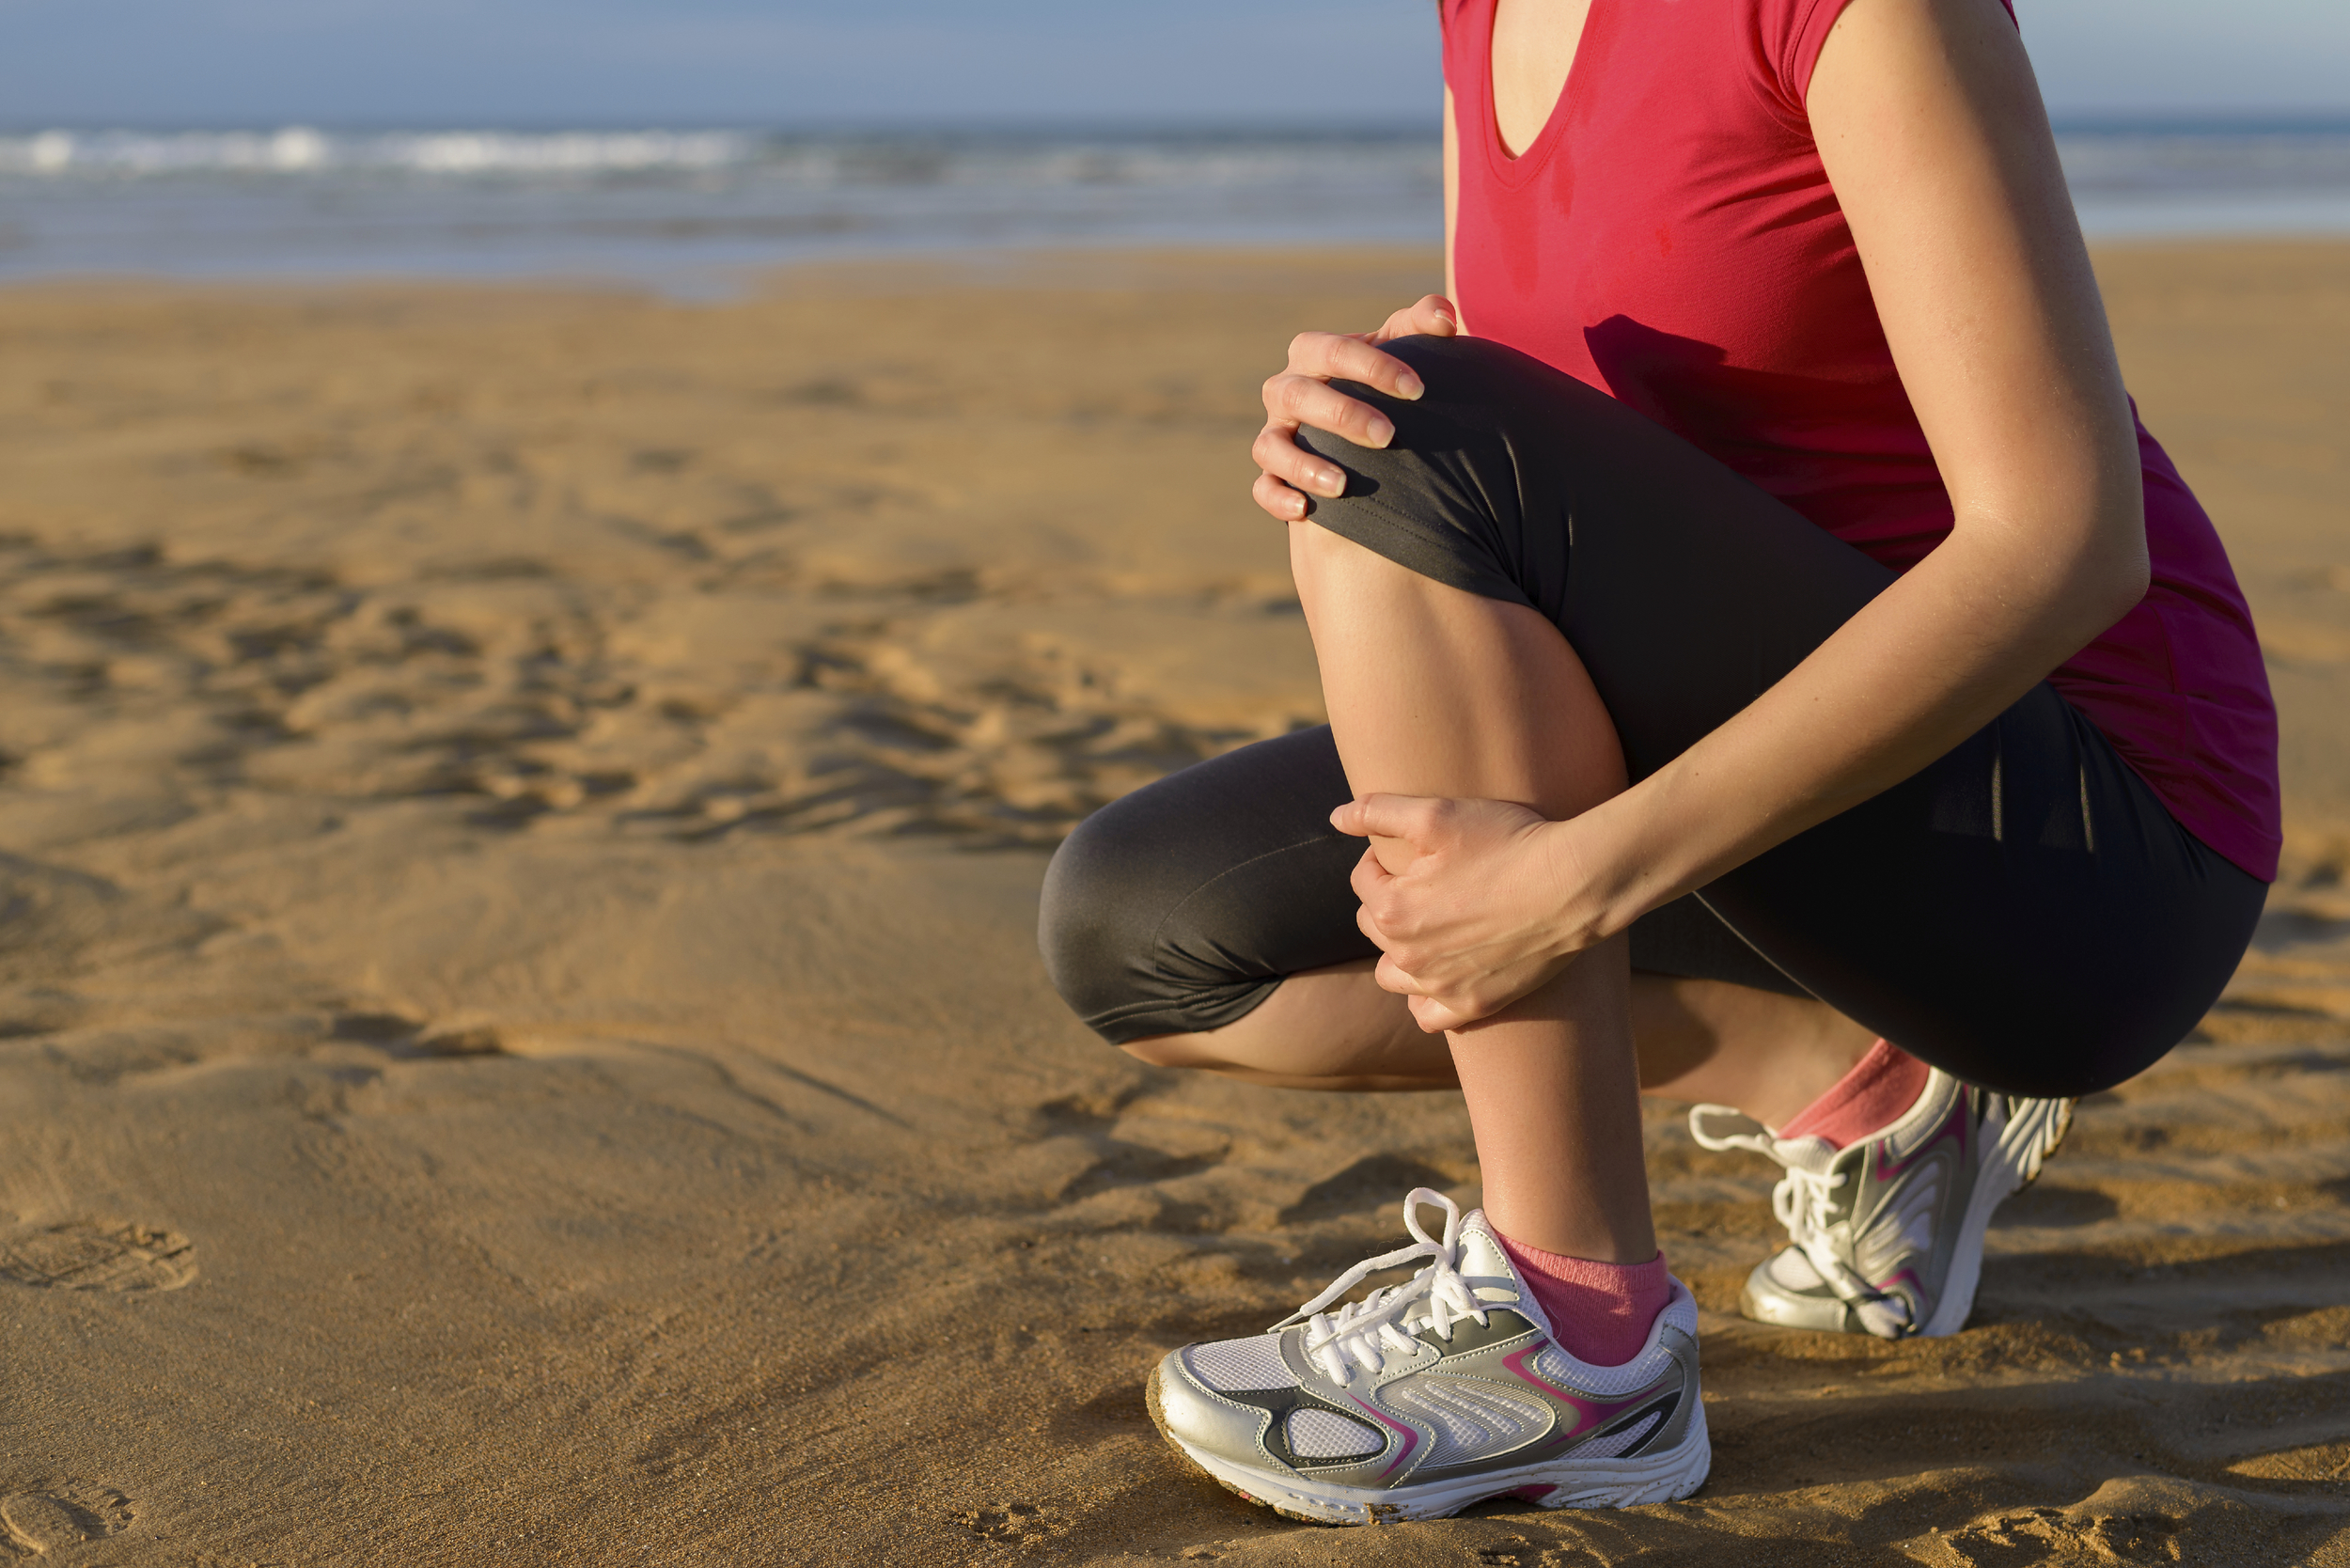 Shin splints could be sign of misalignment